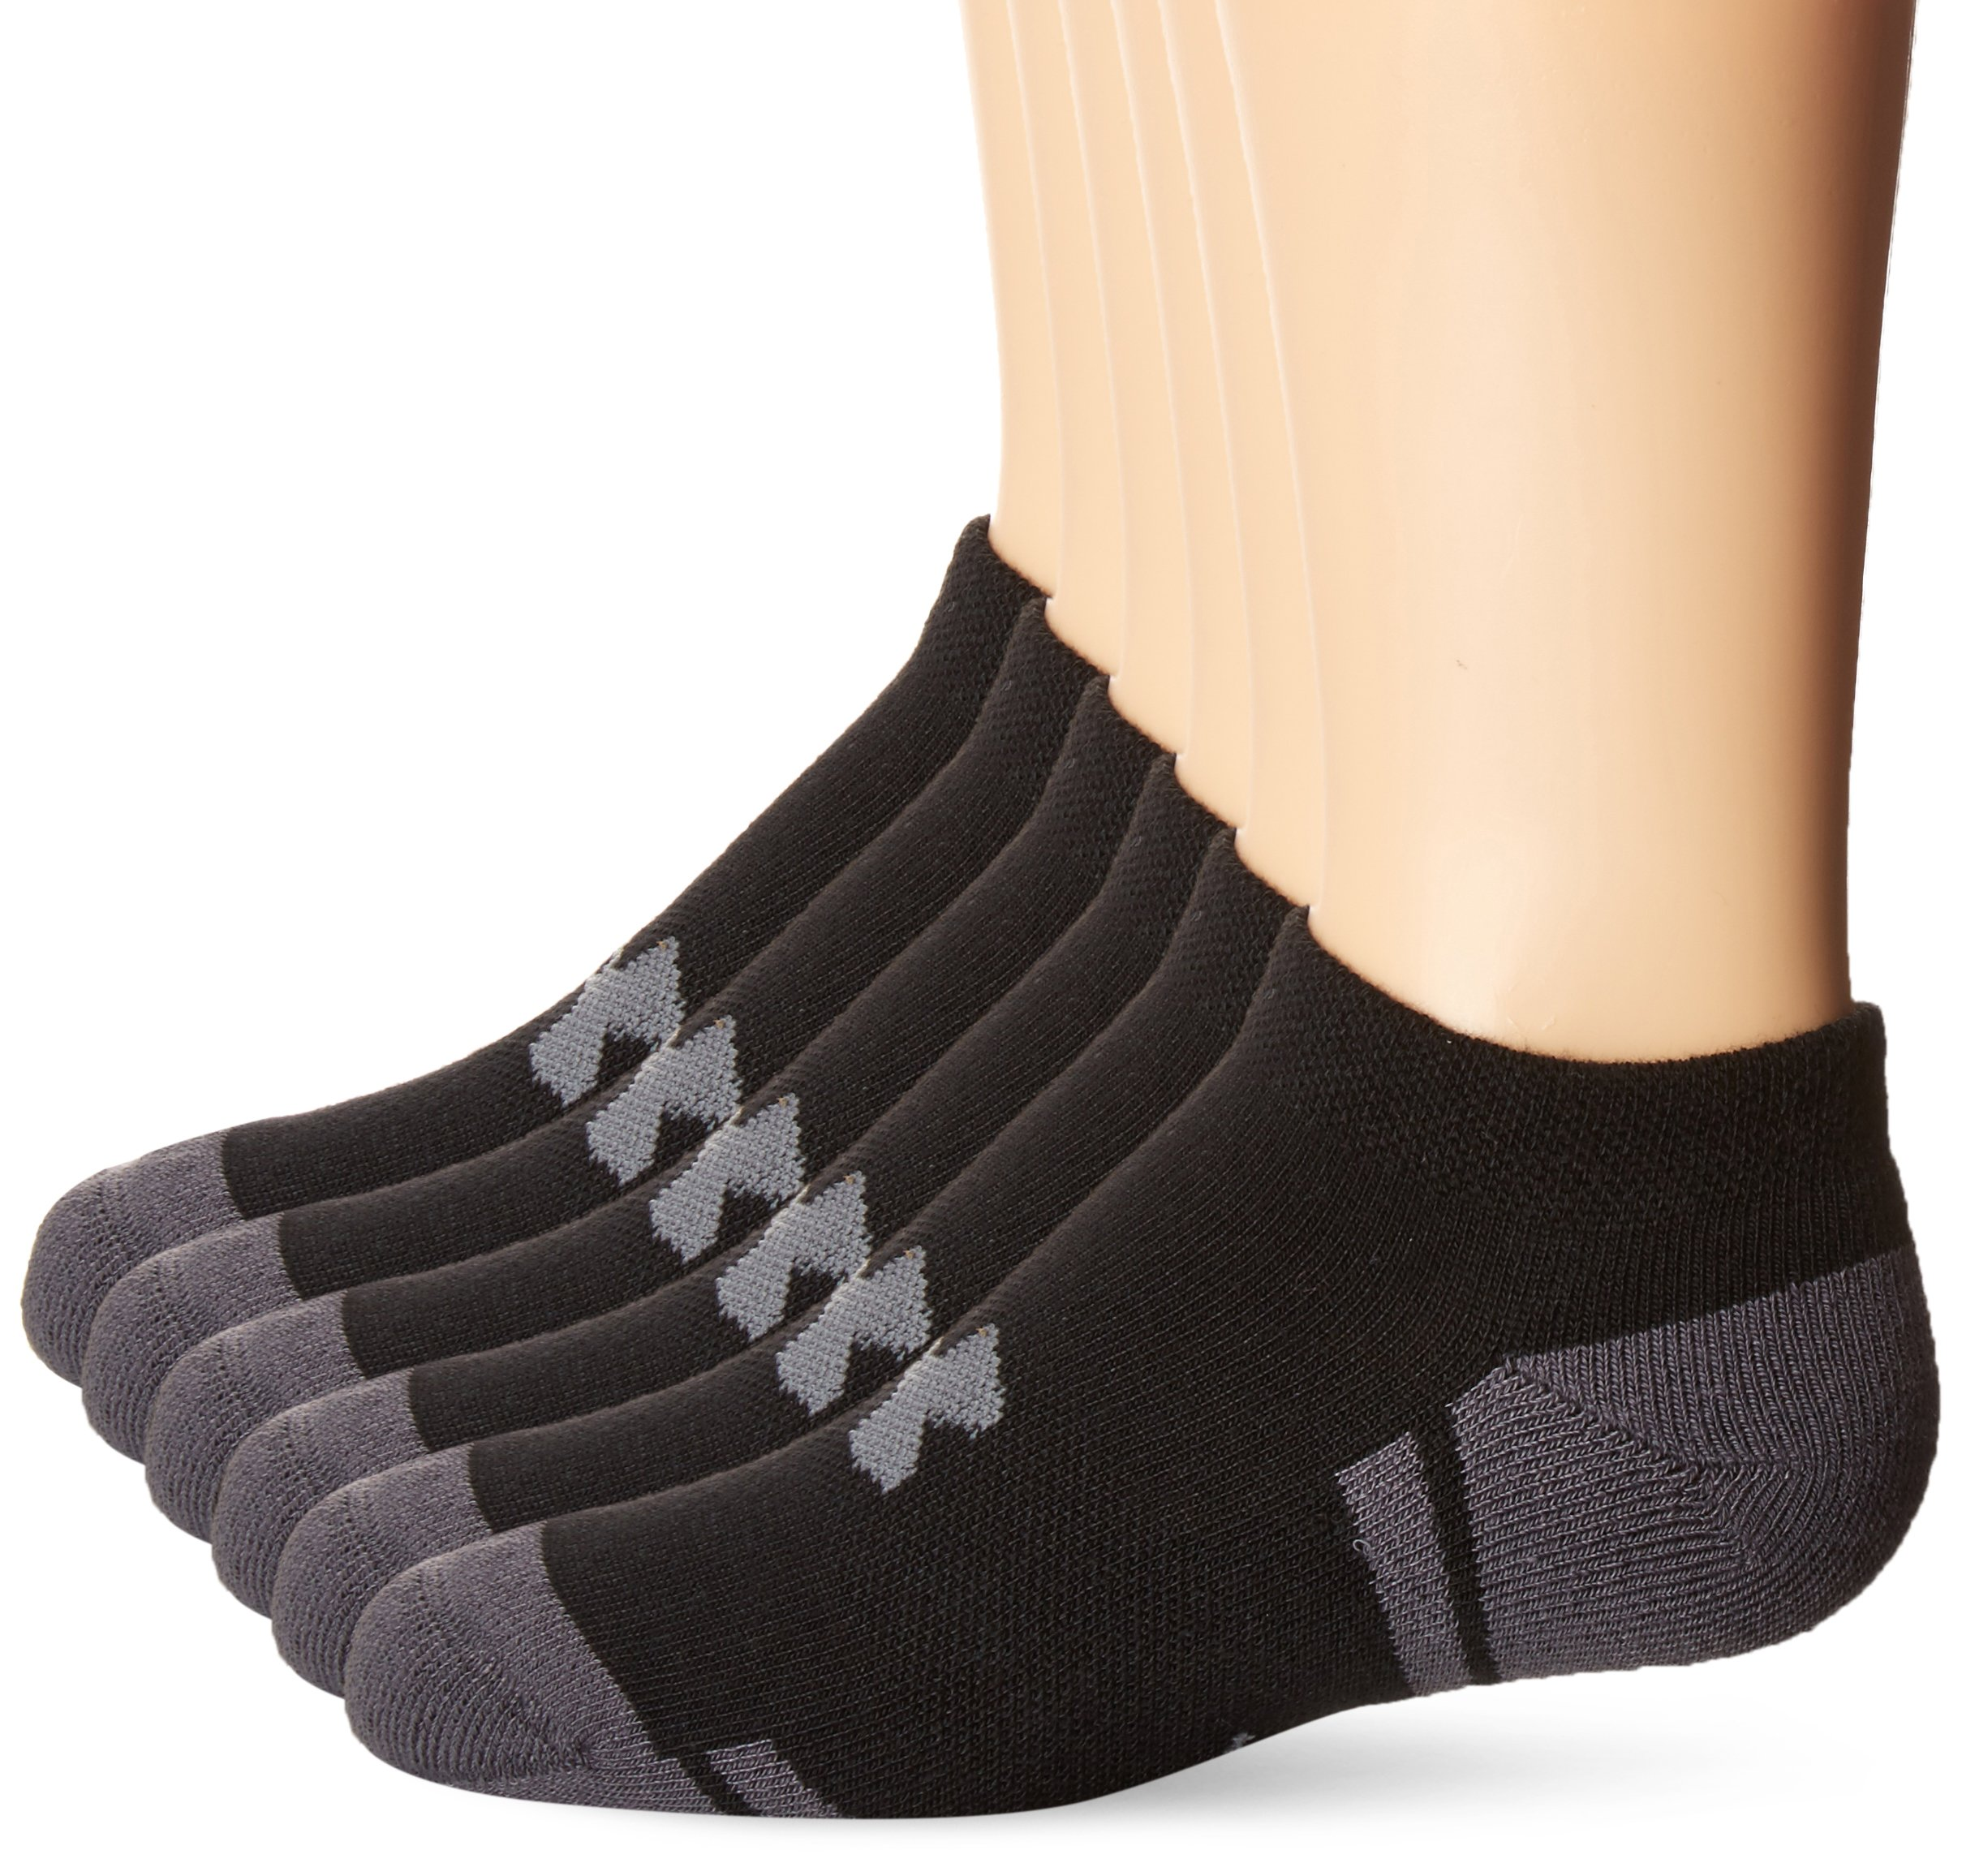 Under Armour Boy Resistor 3.0 No Show Socks, Youth Large, Black/Graphite